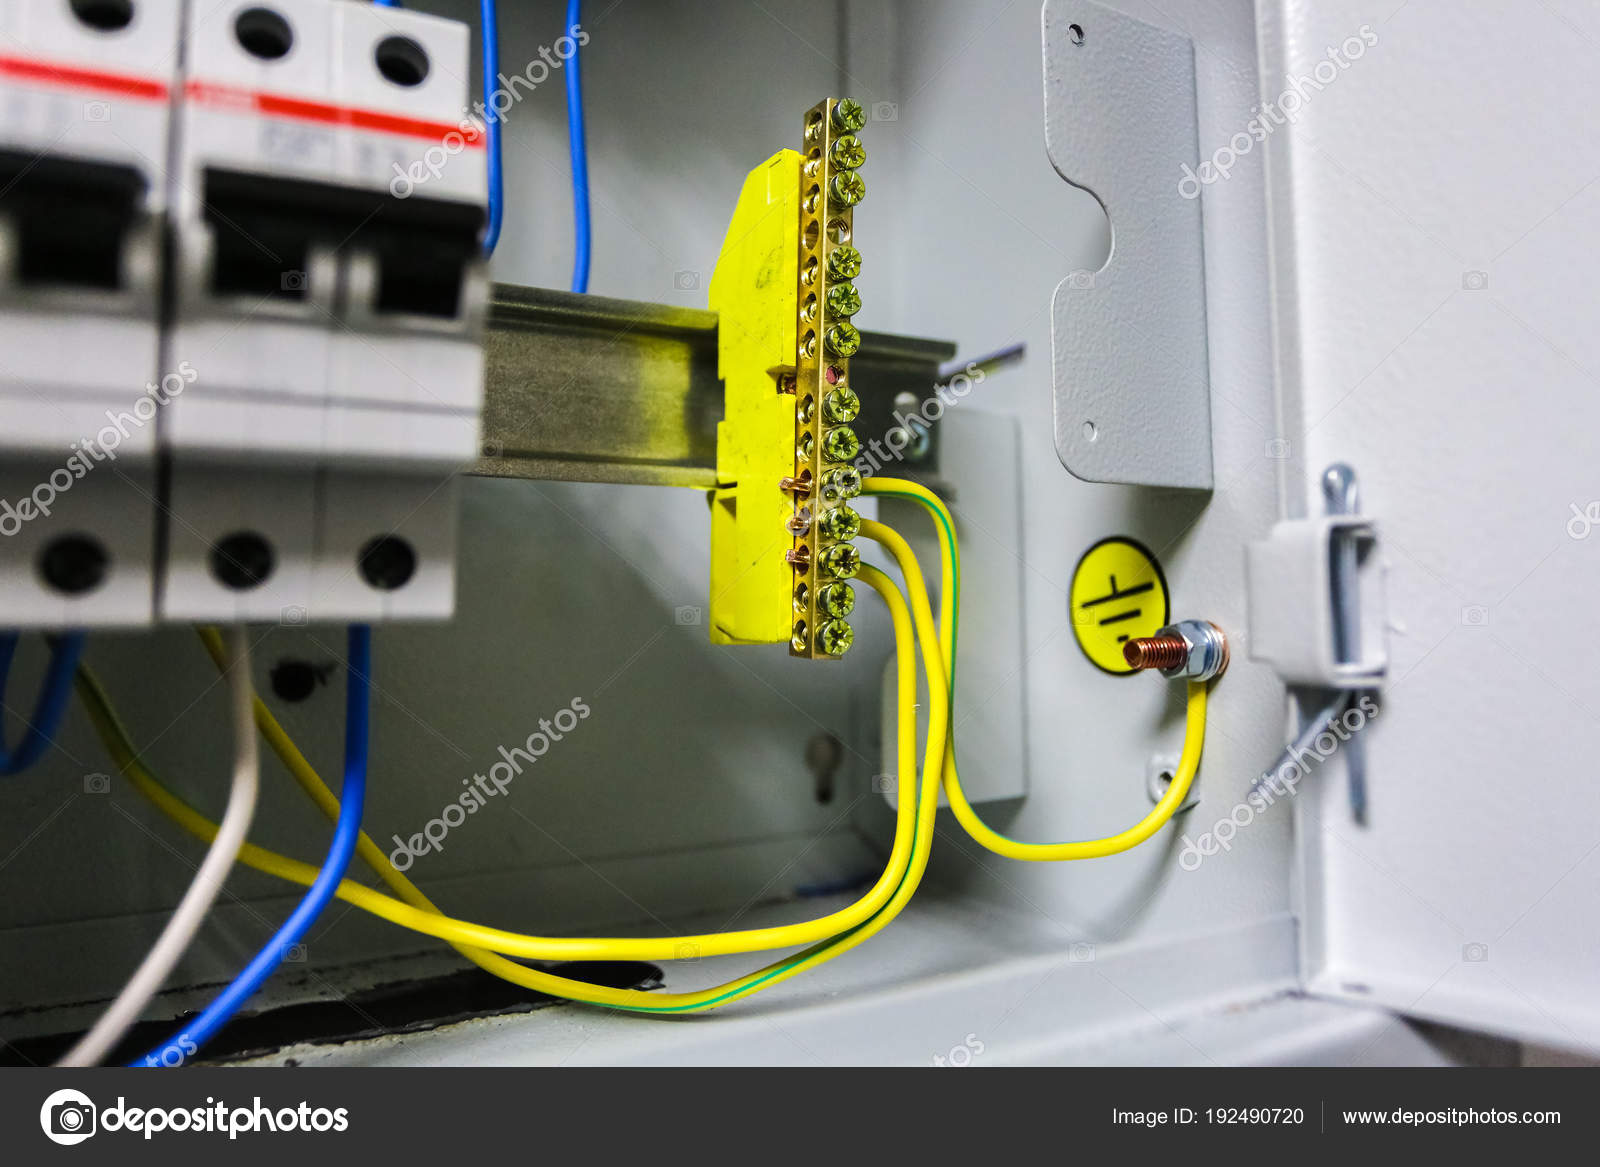 Wiring Breaker Box To Electrical Ground Wires Is Connected Copper Bar Or Earth Bonding In Metal Electric